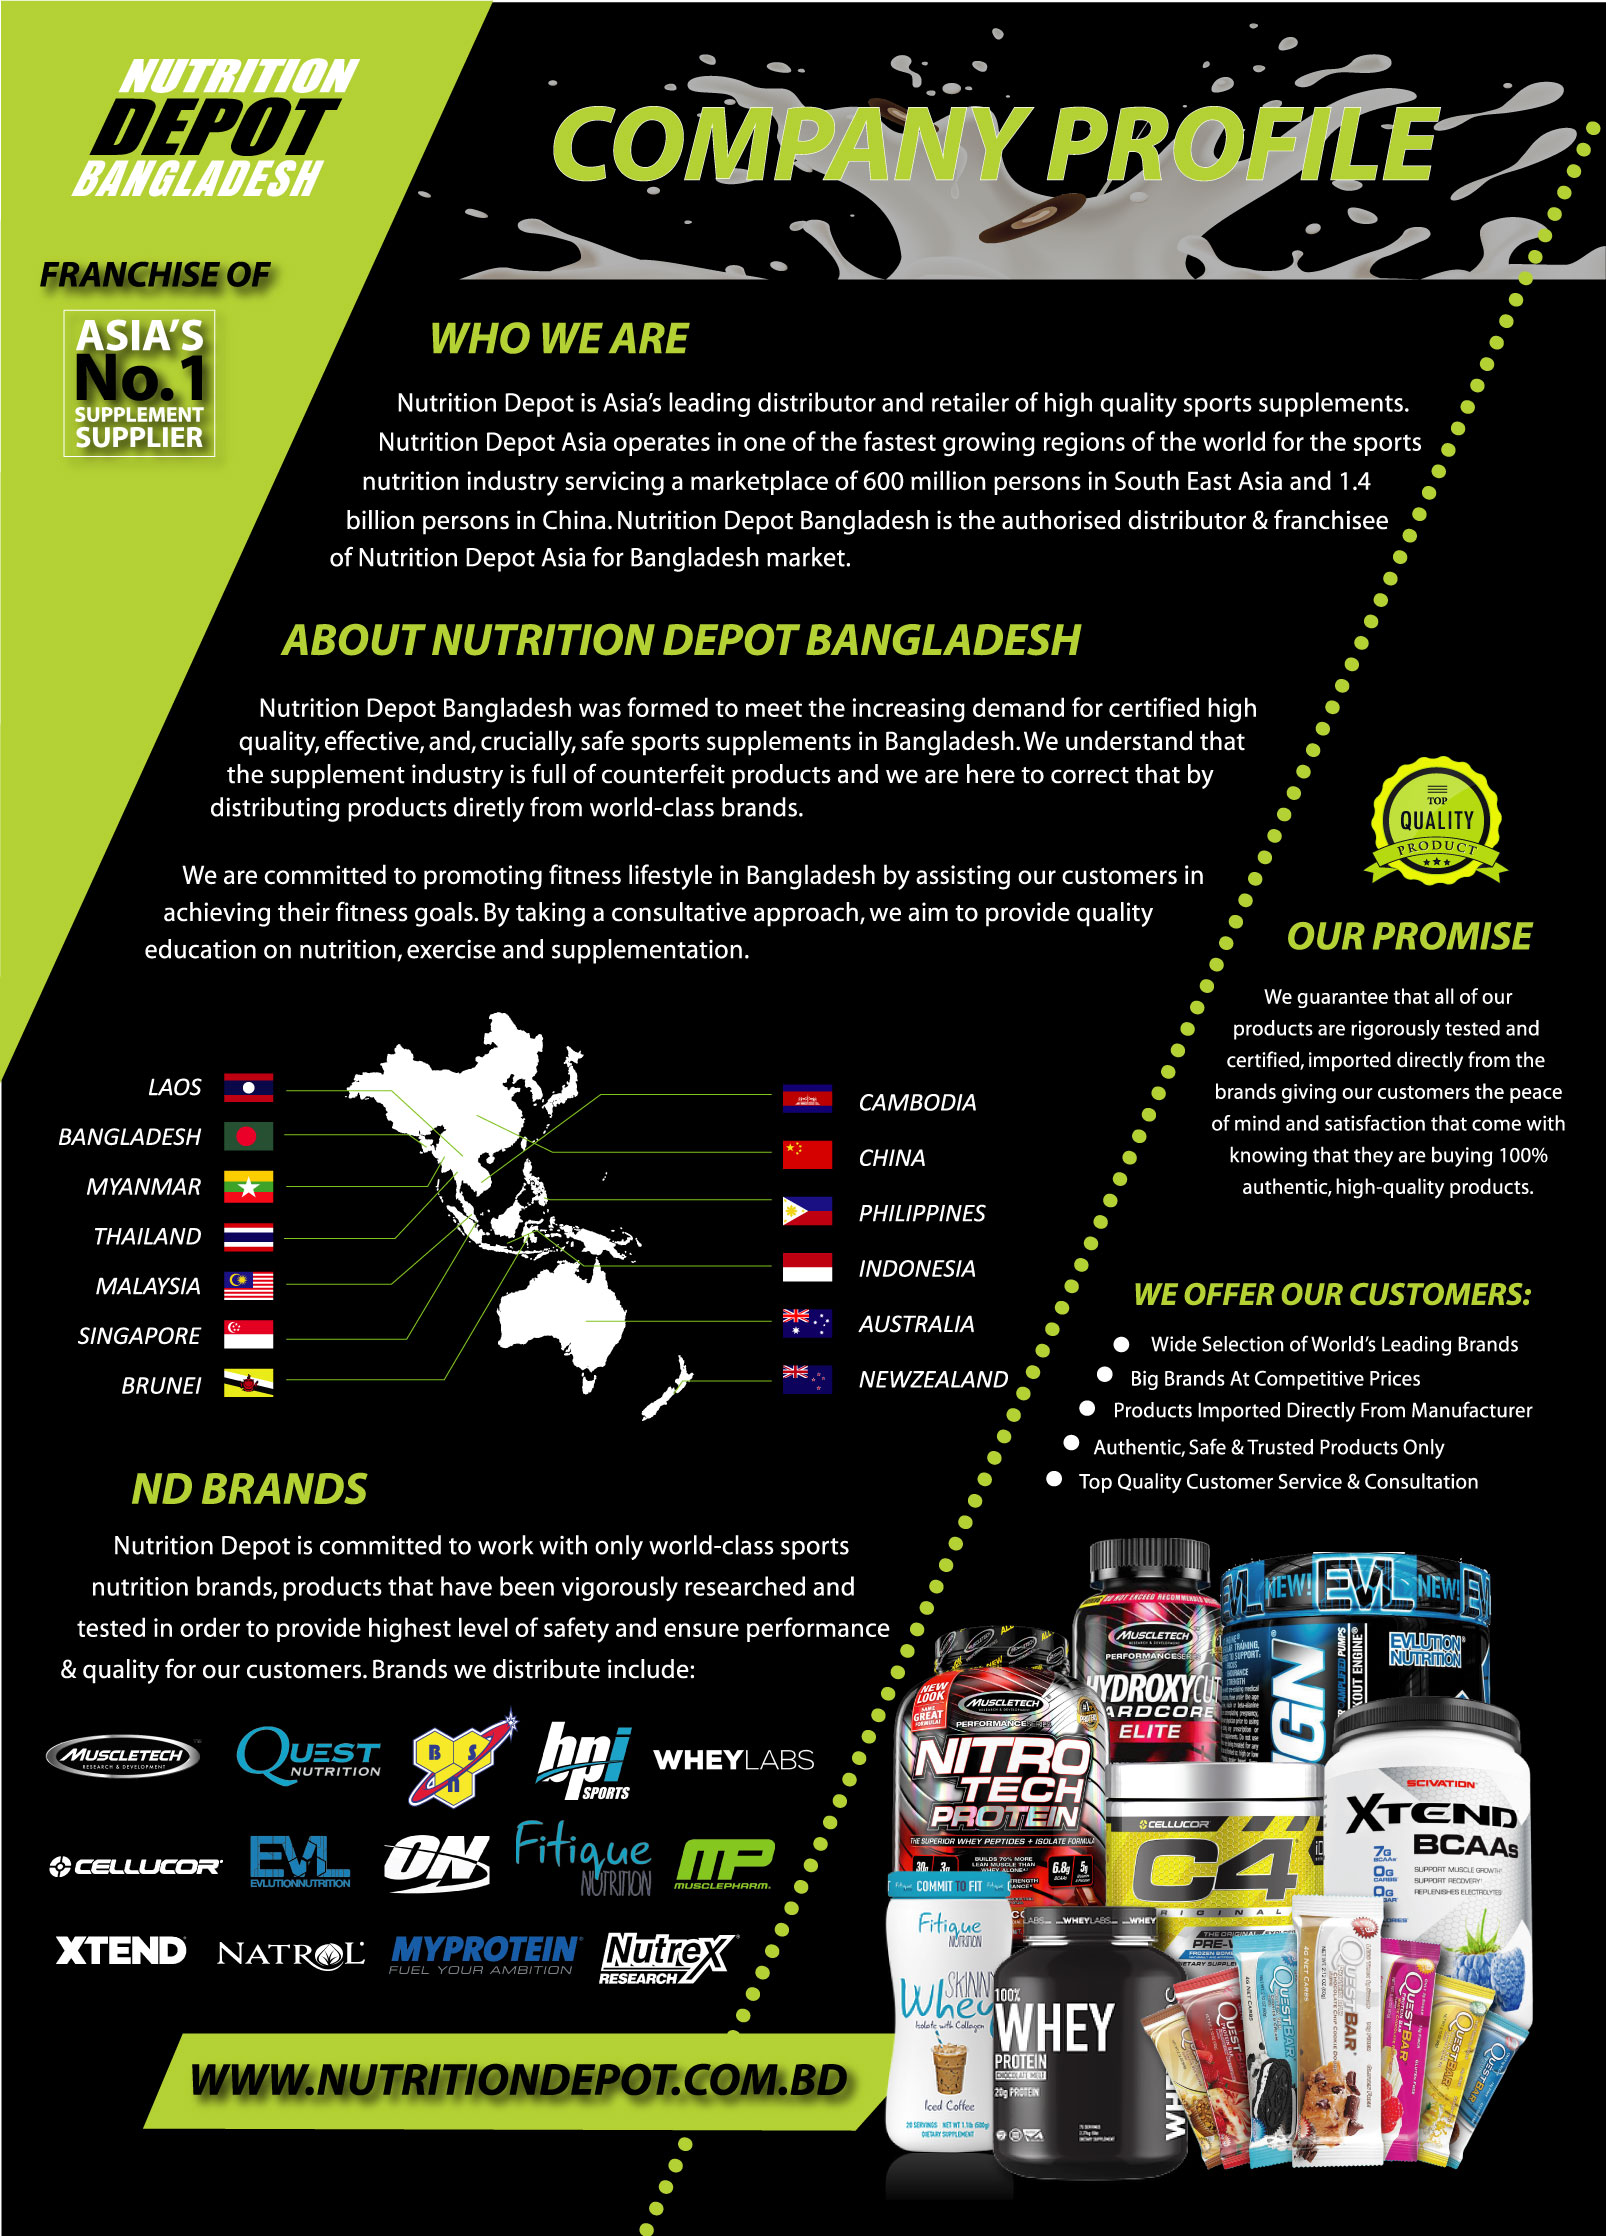 Nutrition Depot Bangladesh Profile